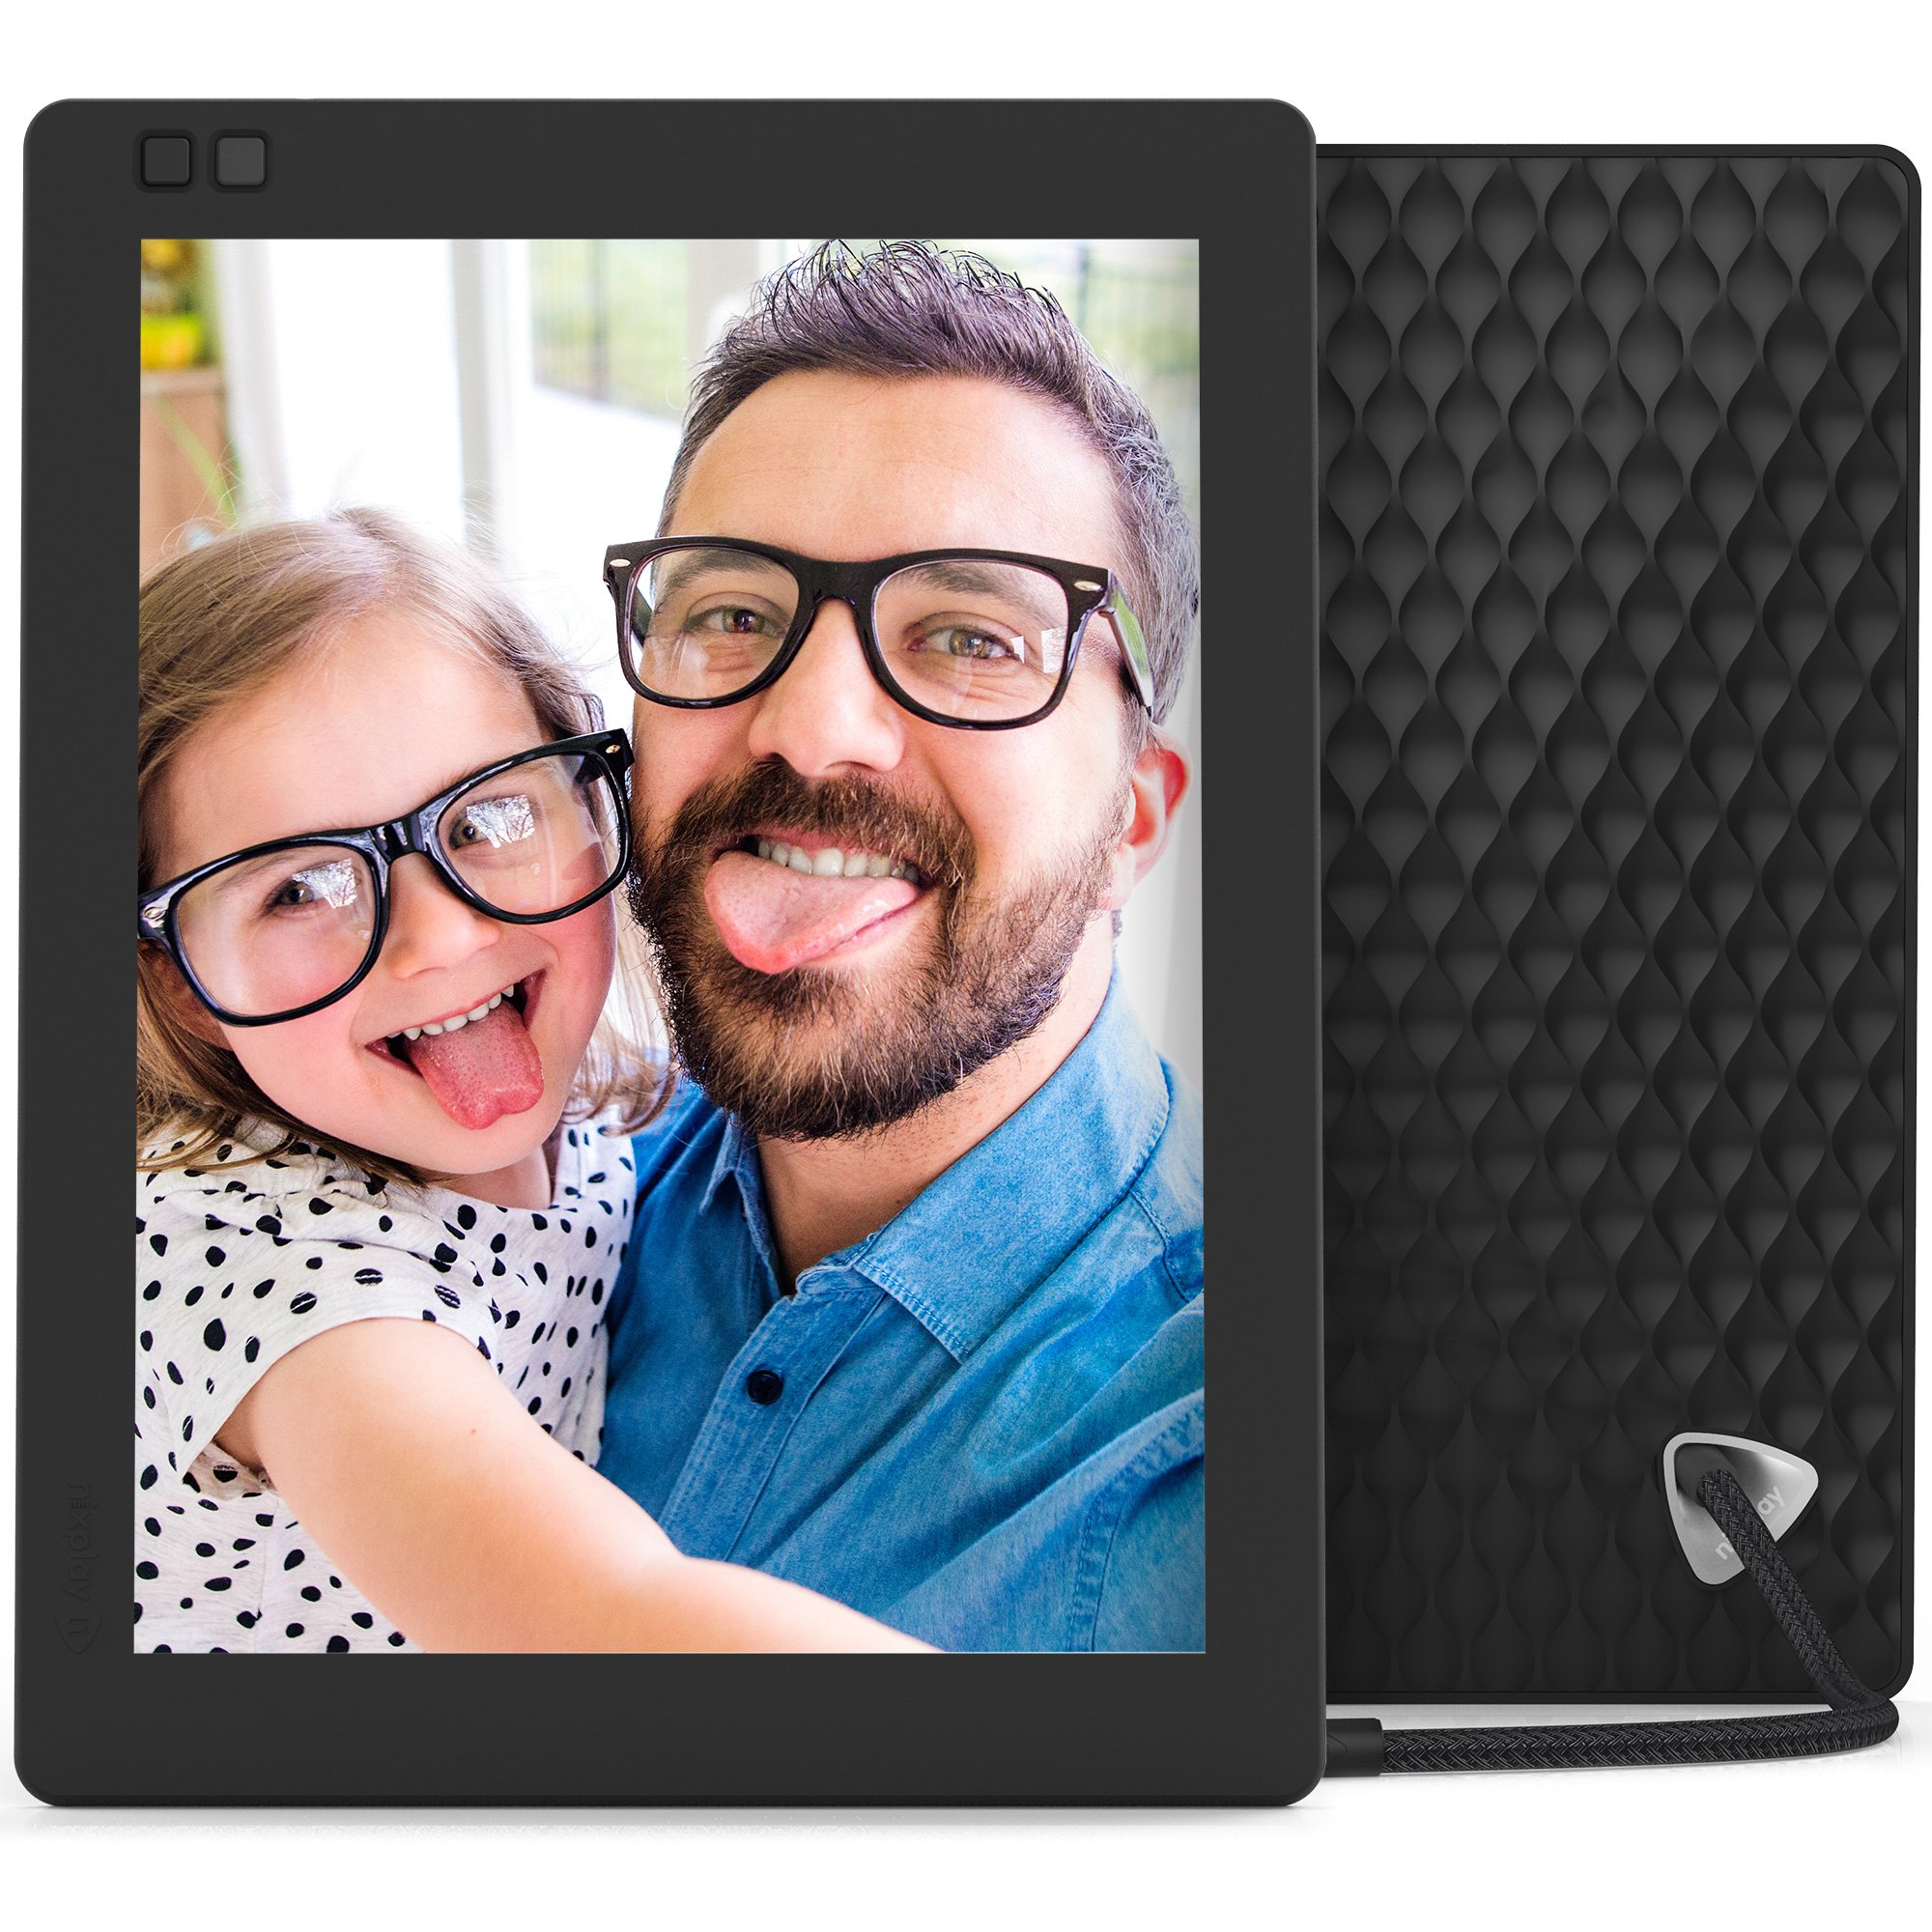 Nixplay Seed 10 Inch Wifi Cloud Digital Photo Frame With Ips Display